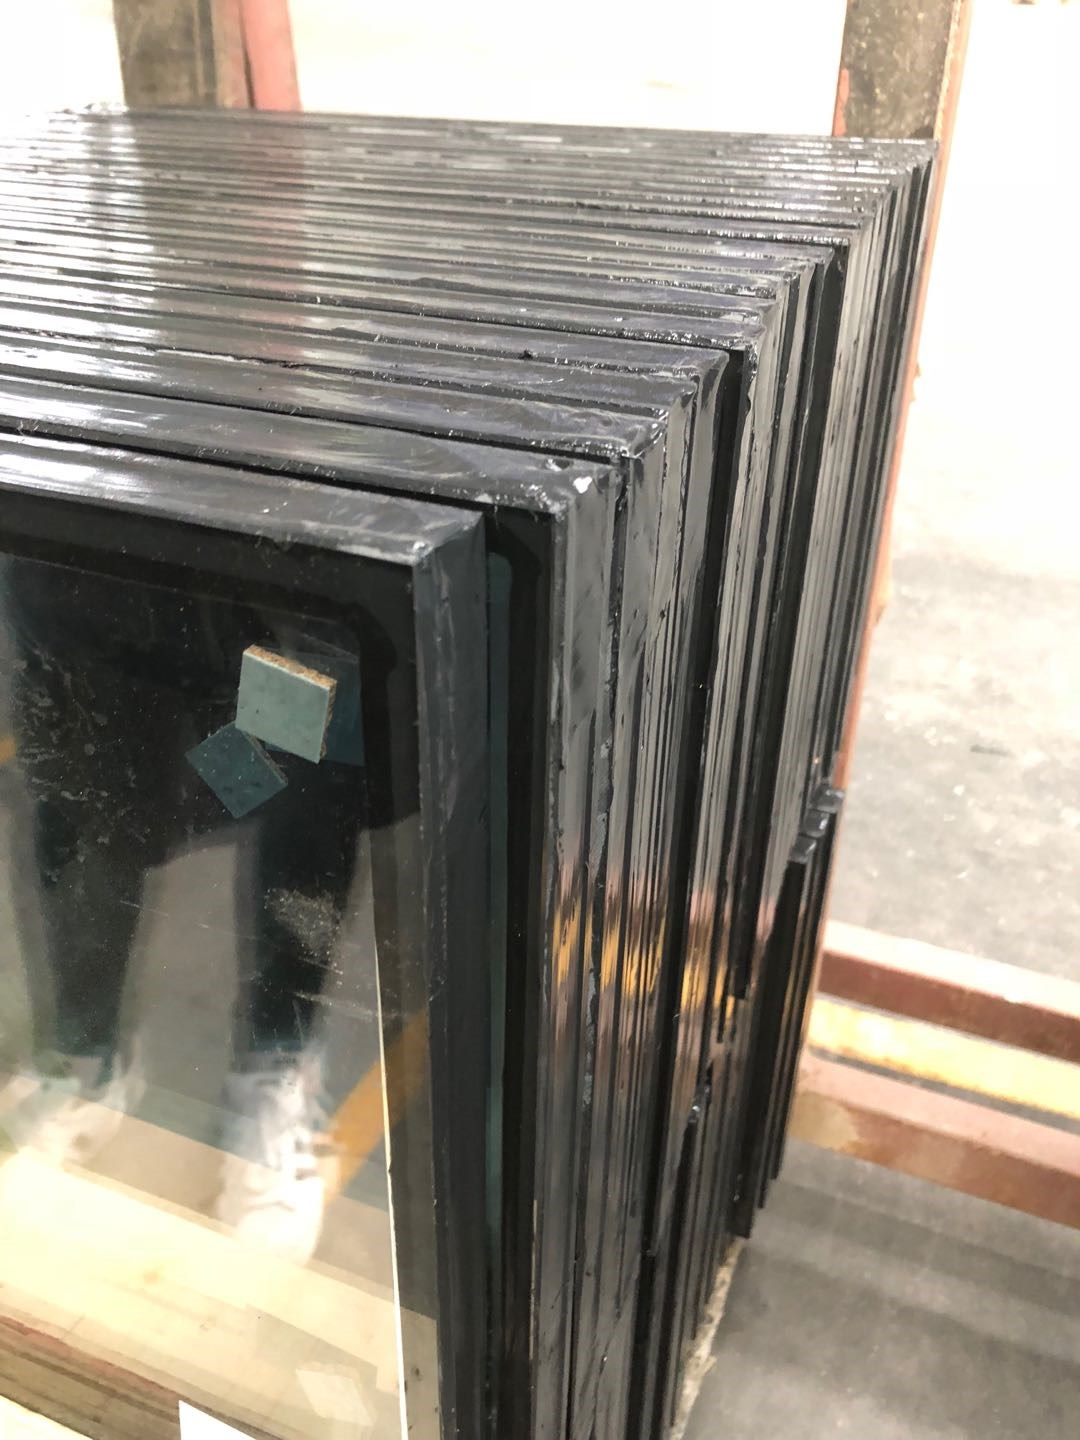 Curtain Wall Insulated Glass Manufacturers, Curtain Wall Insulated Glass Factory, Curtain Wall Insulated Glass